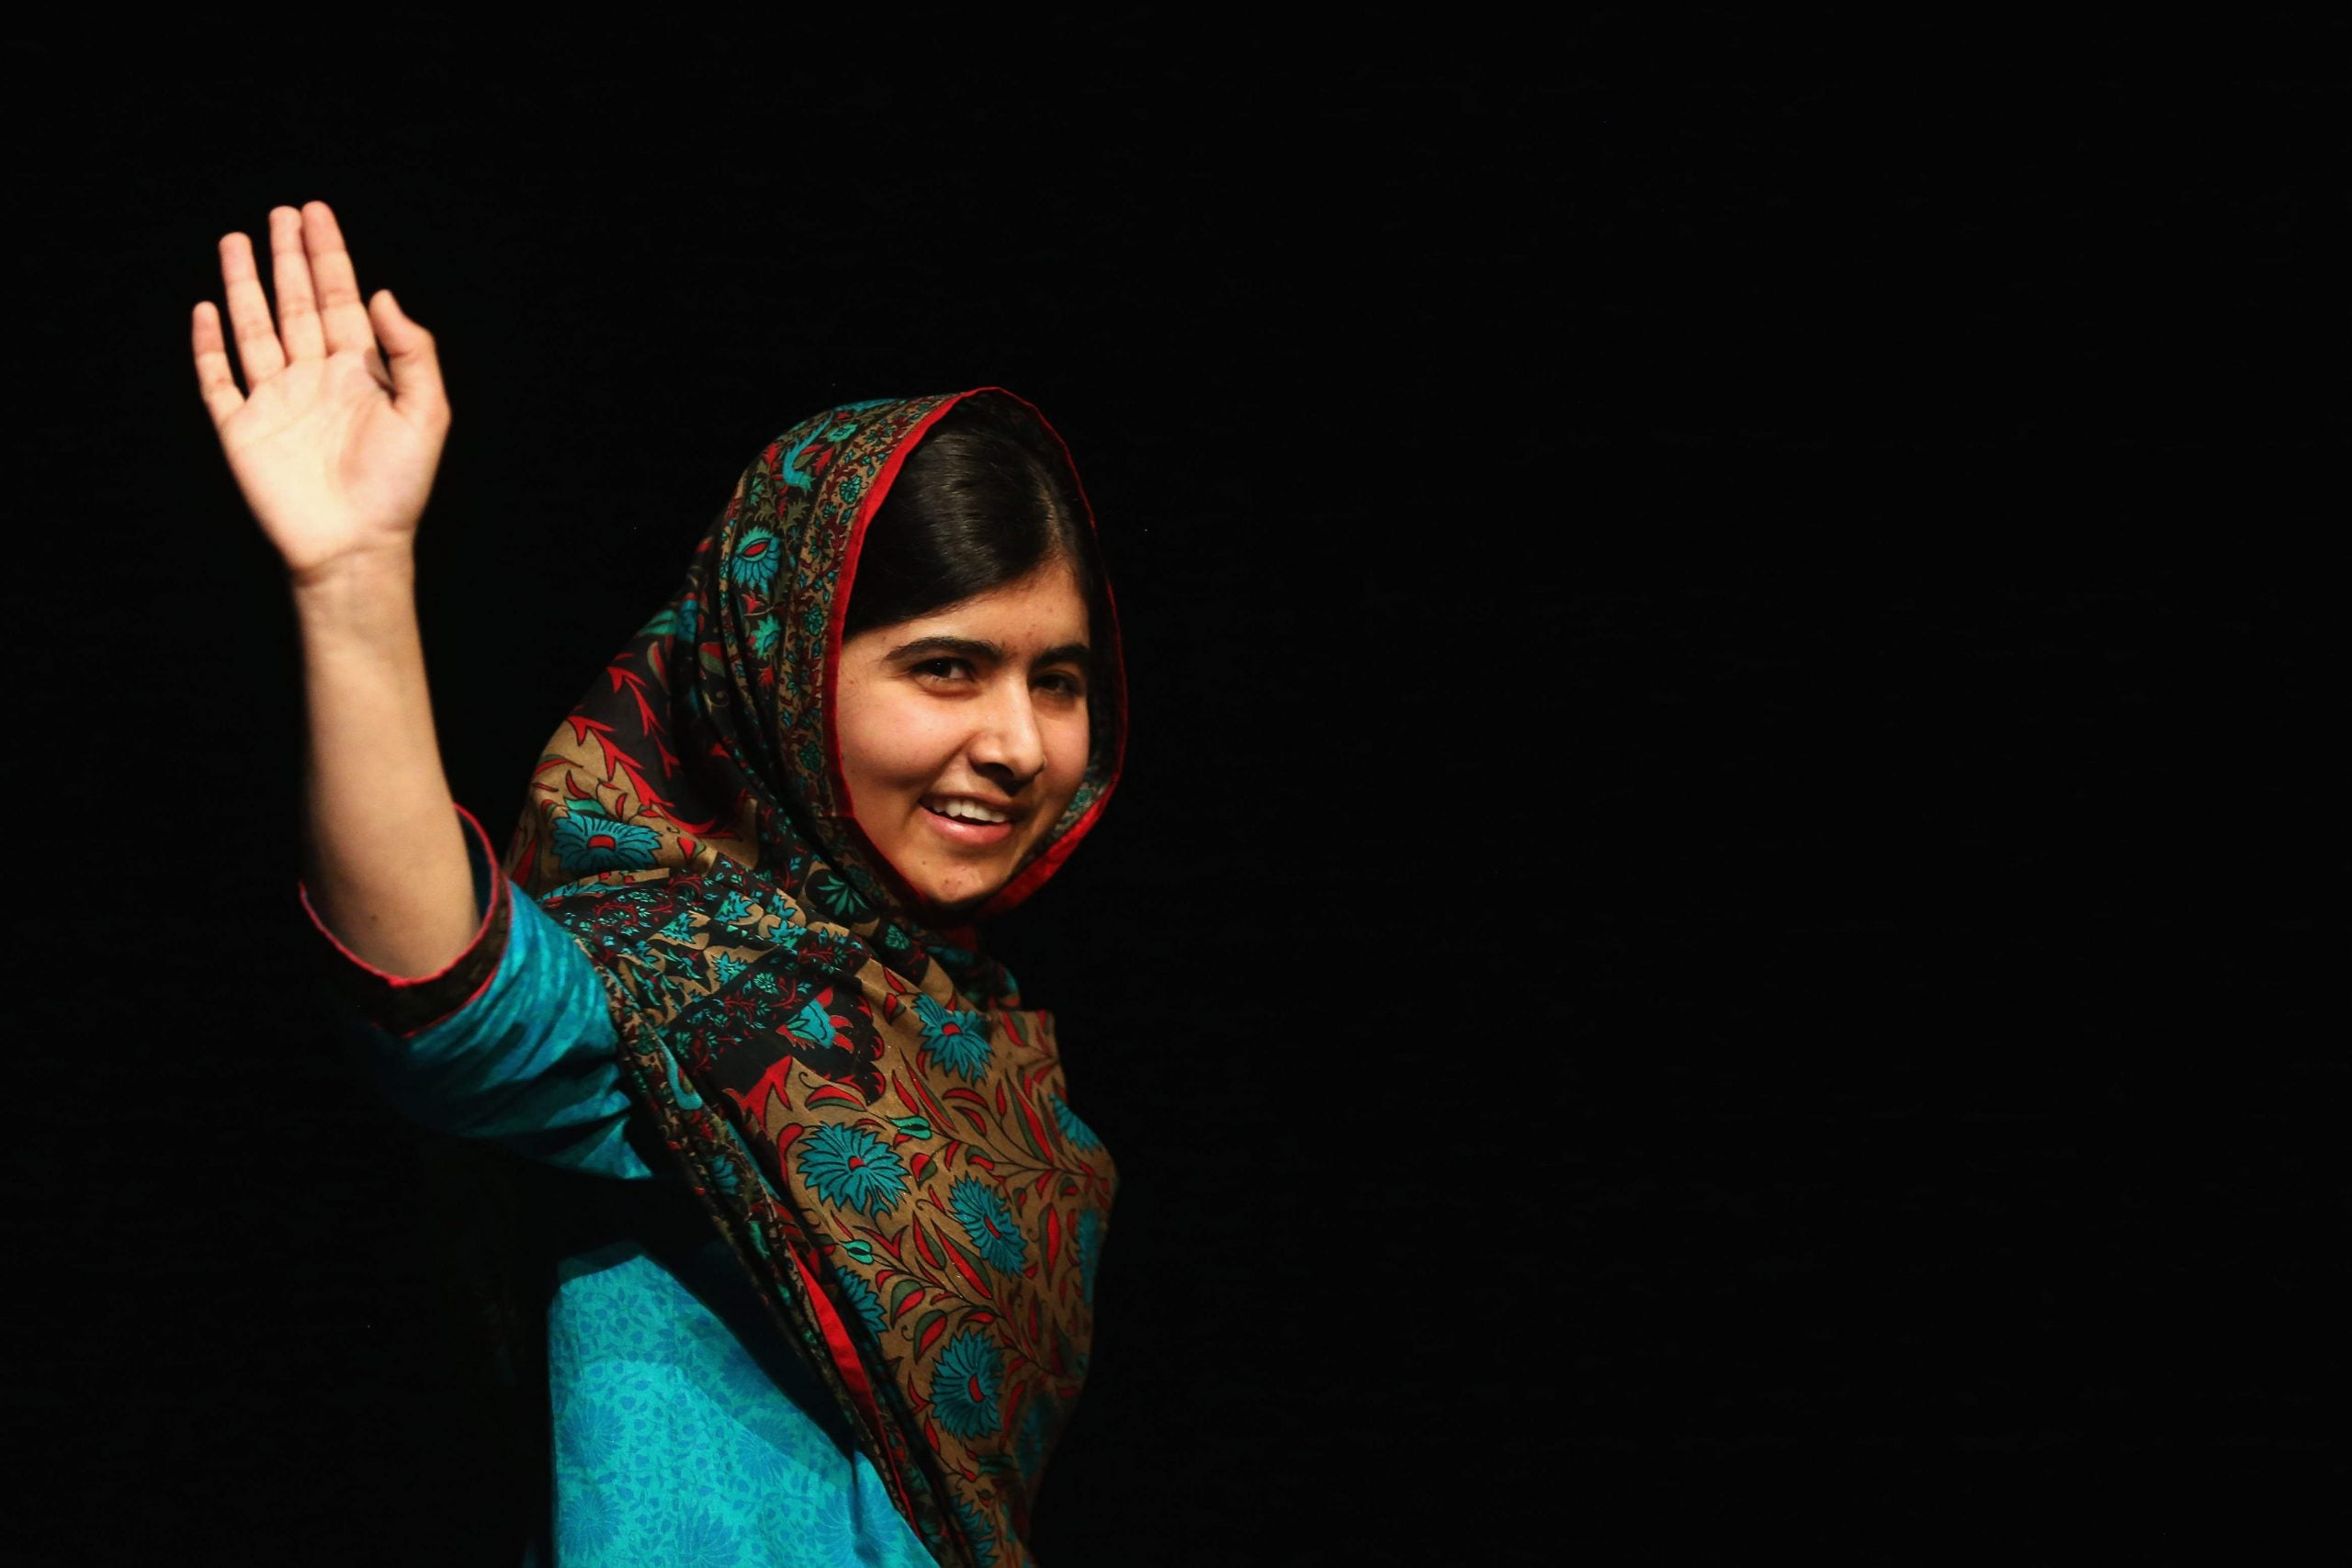 He Named Me Malala is a hagiography – a deserved one, but audiences may crave something meatier